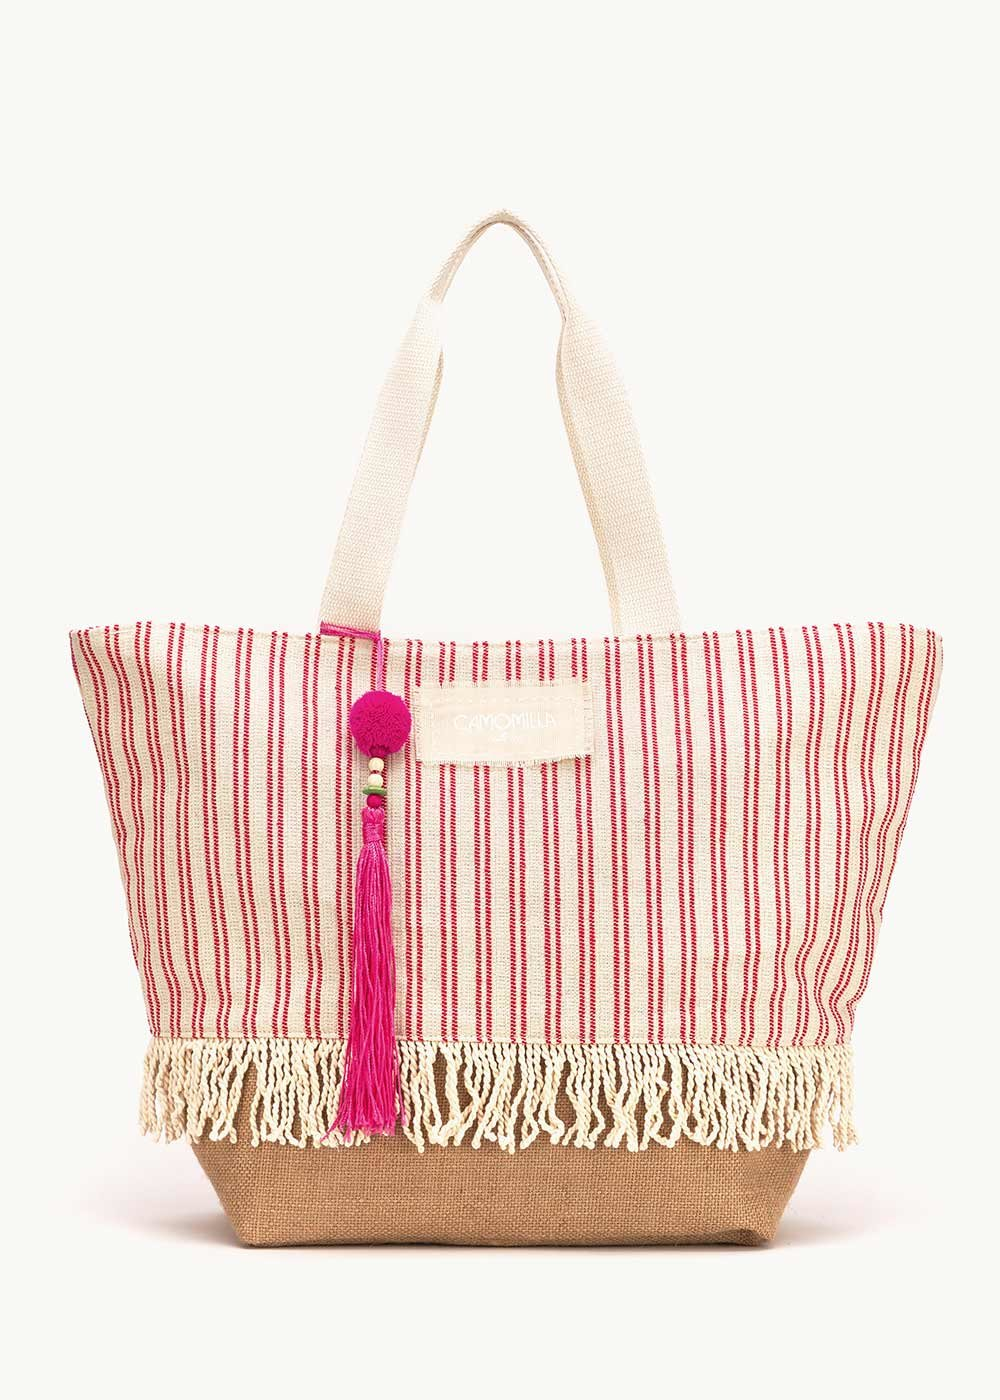 Borsa Barth fantasia righe - White / Aragosta Stripes - Donna